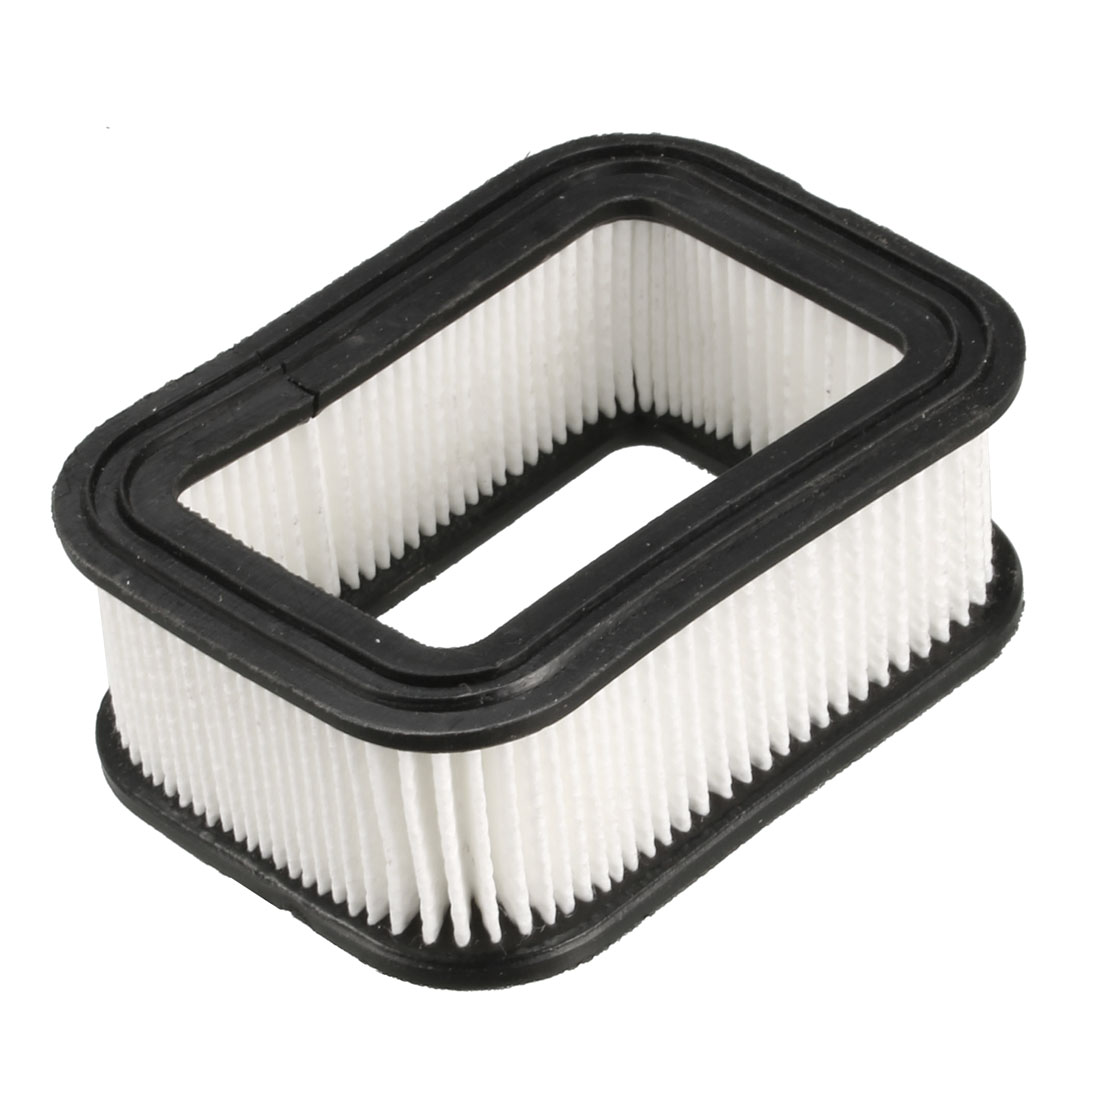 Engine Air Filter Cleaner Replacement for 45/52/58 Chainsaw